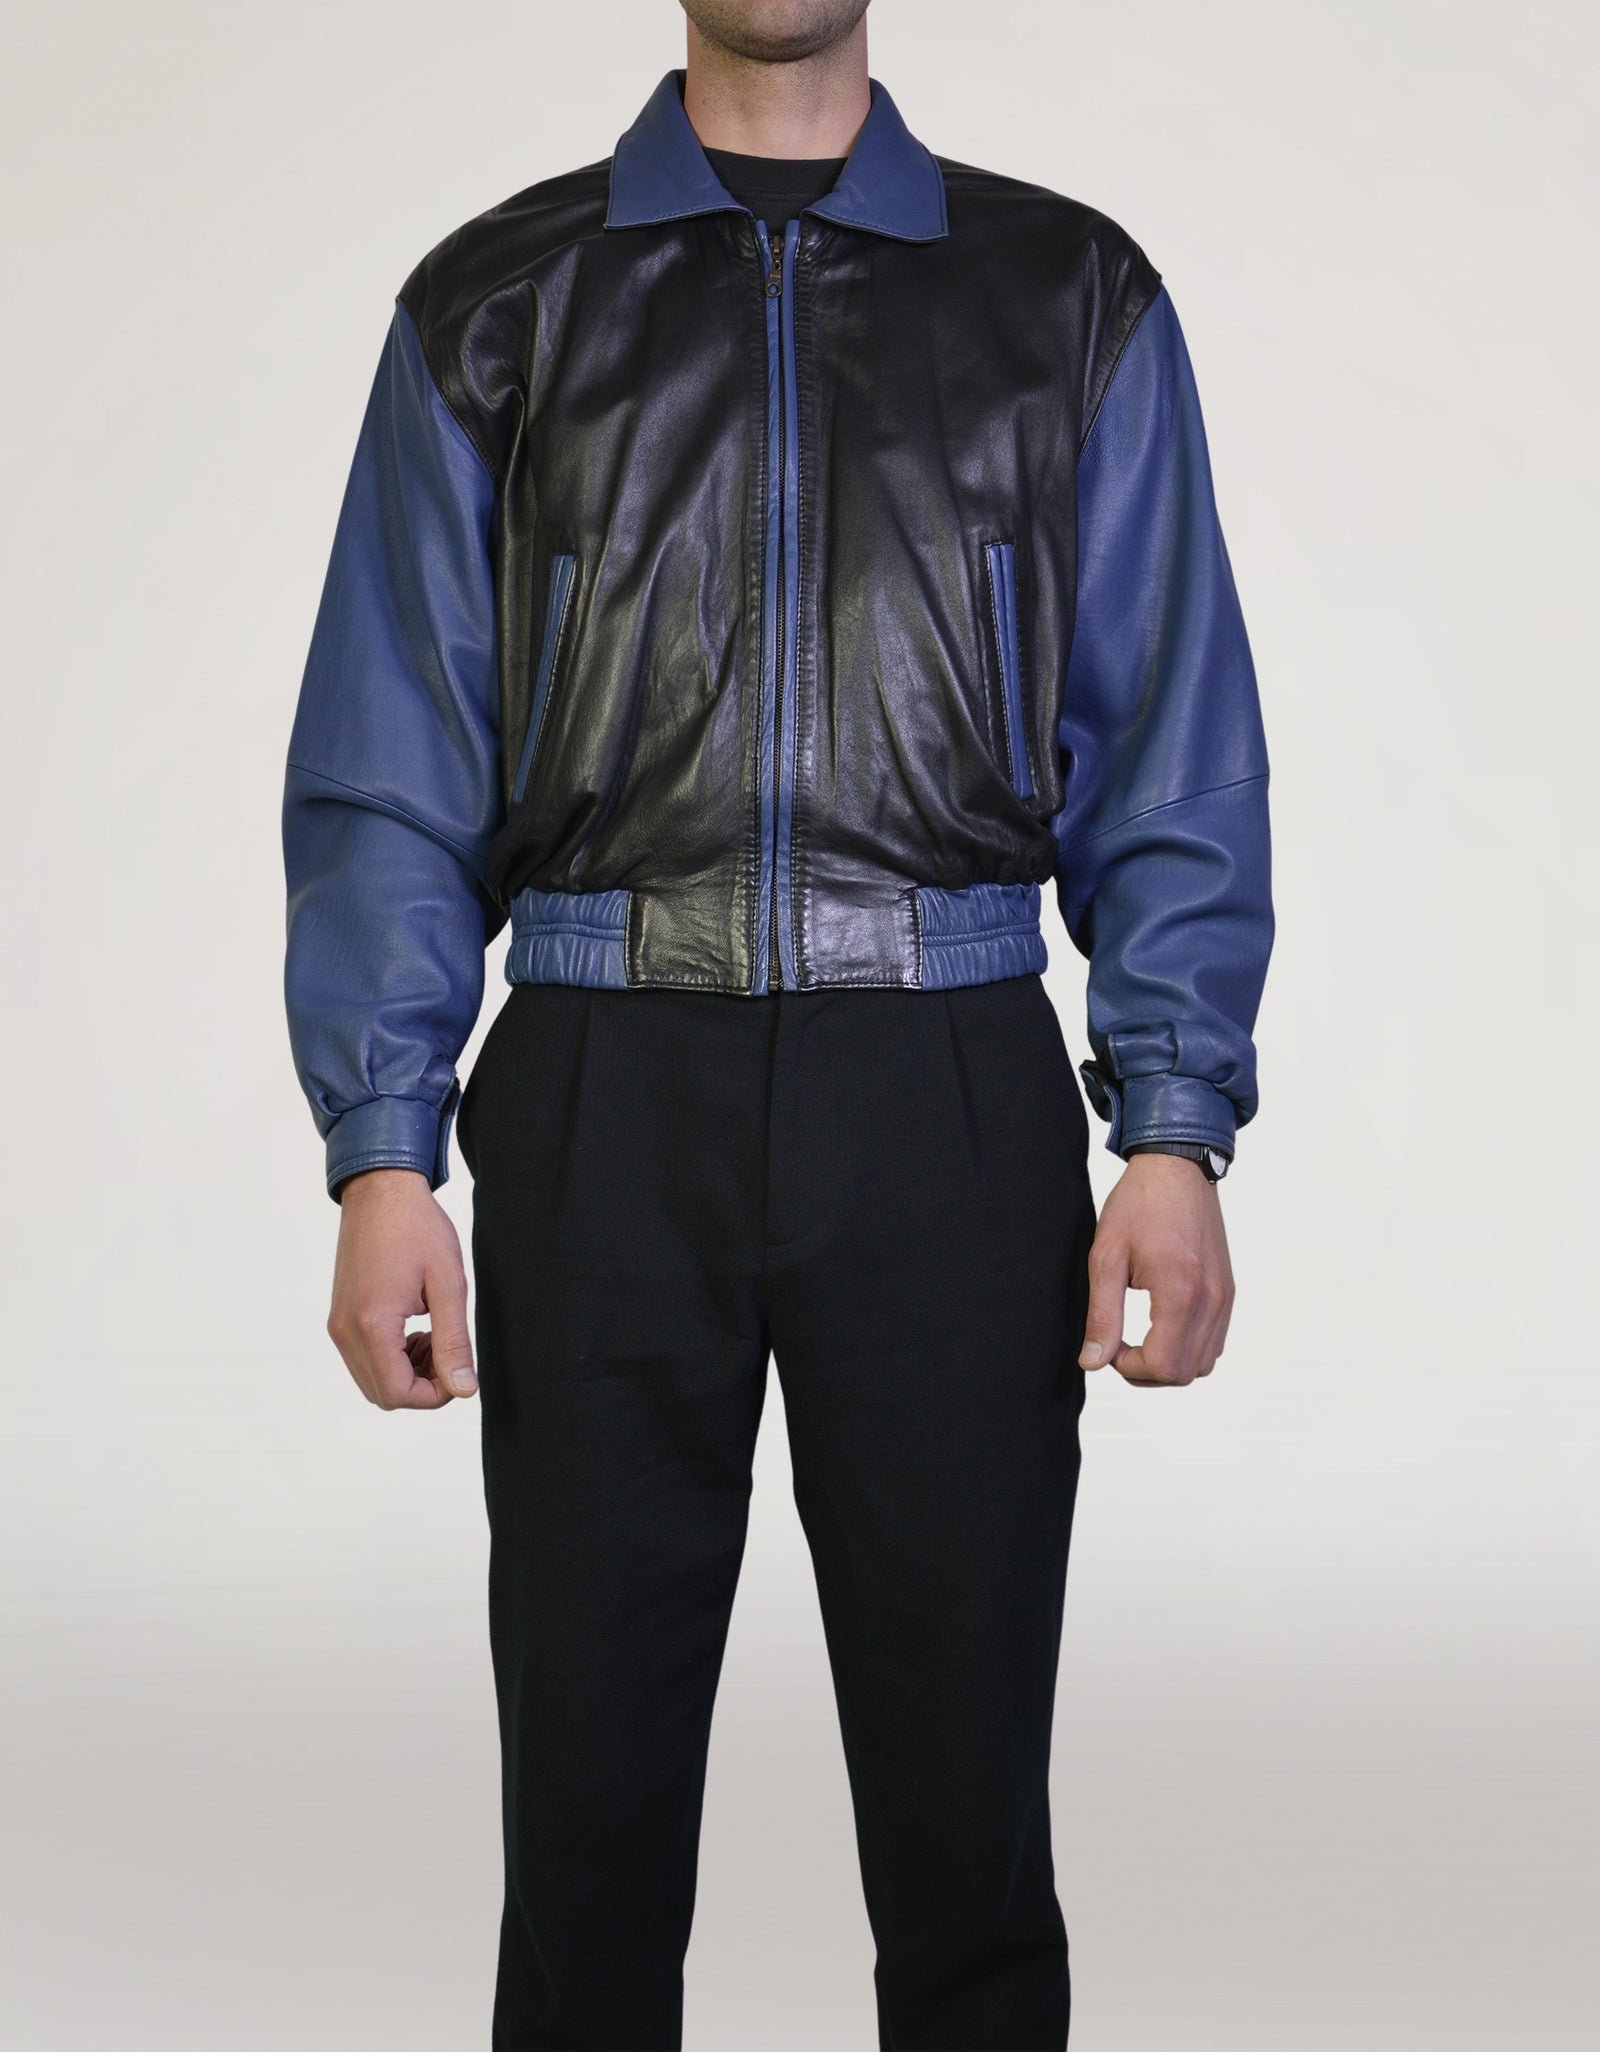 80s leather jacket - PICKNWEIGHT - VINTAGE KILO STORE